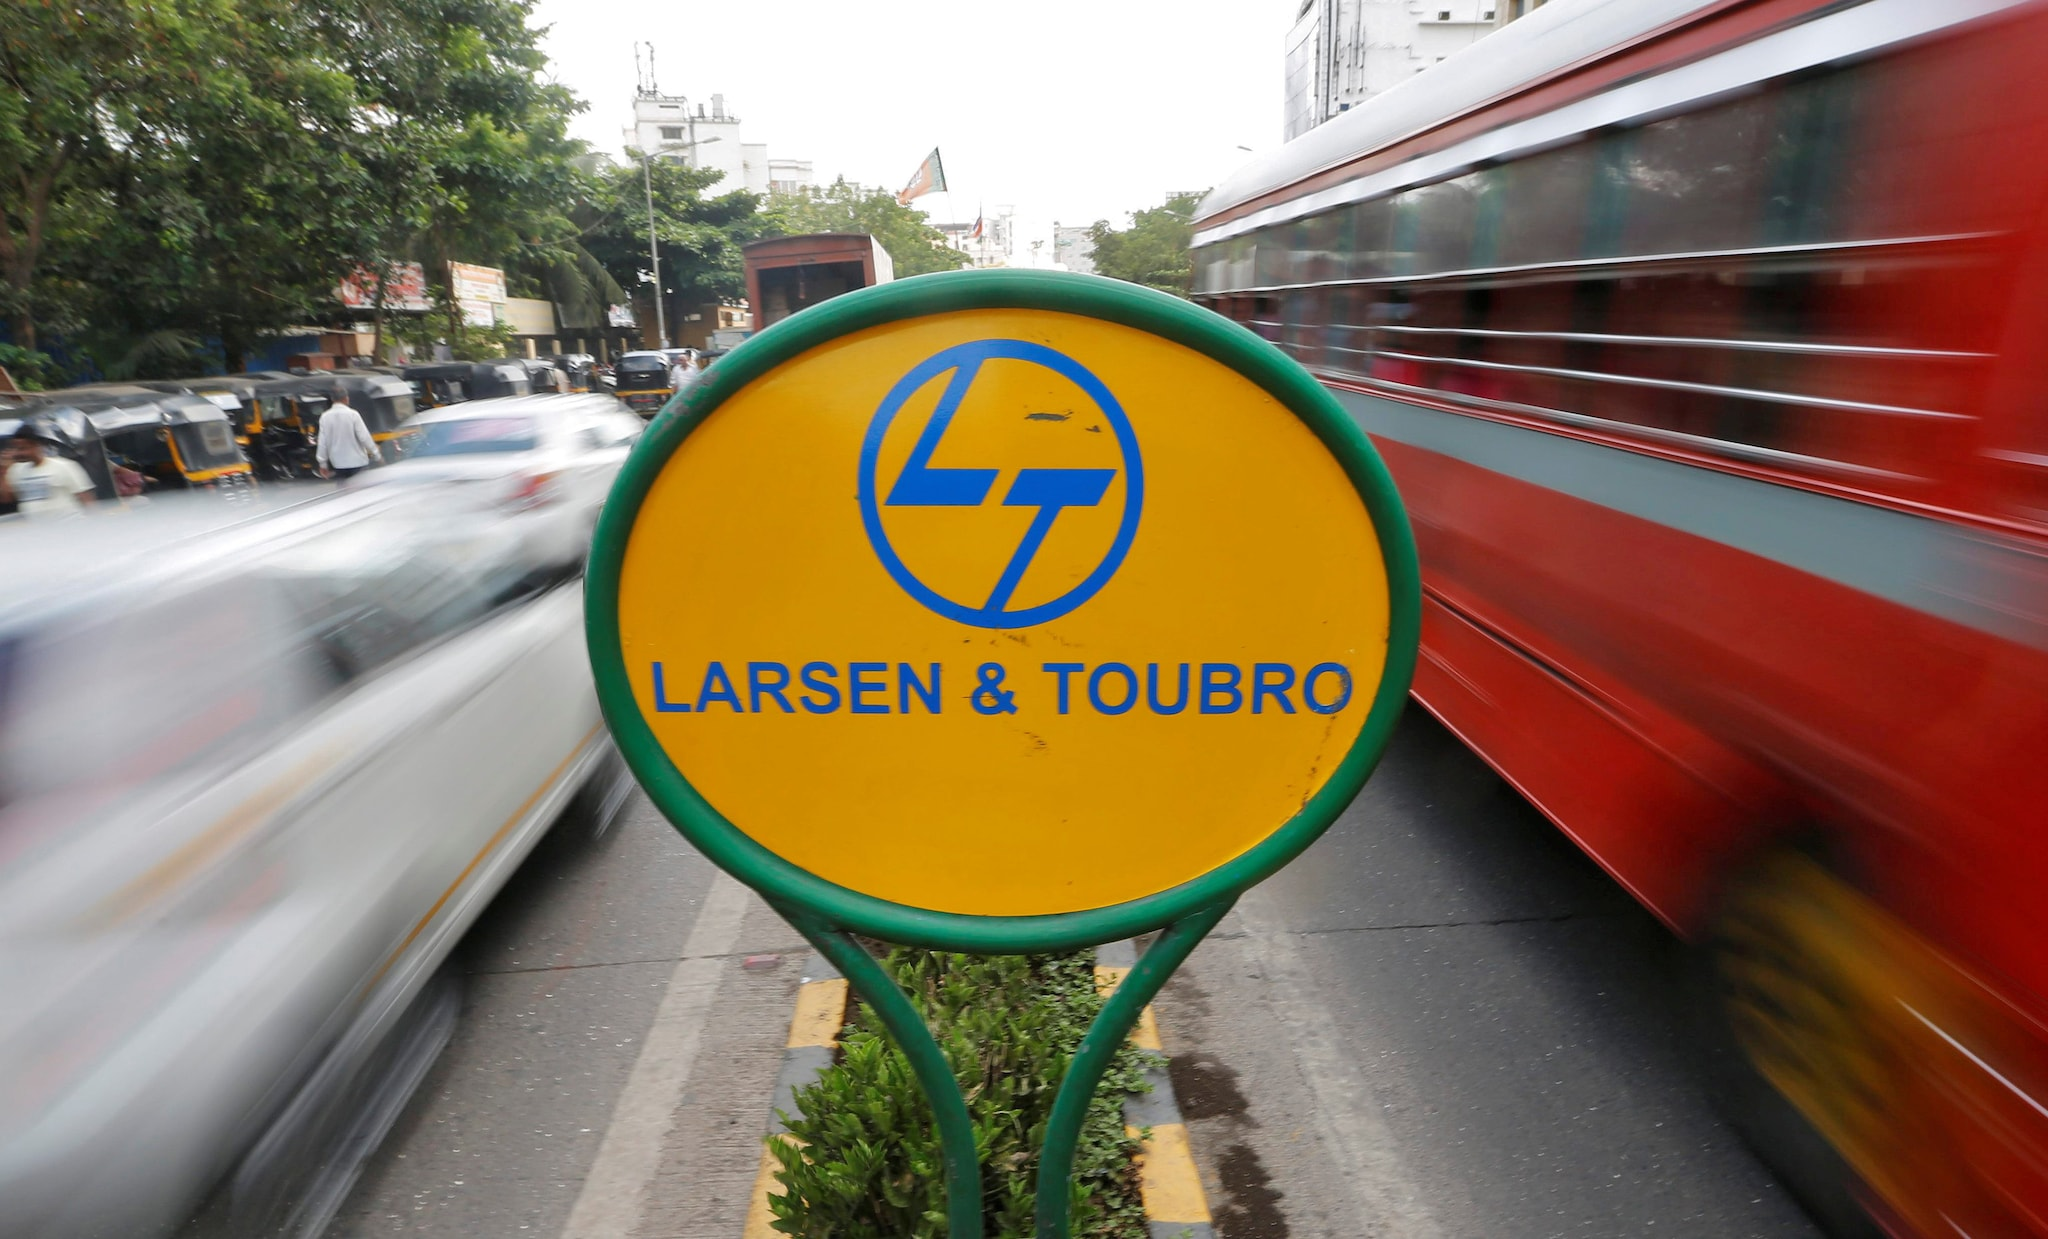 L&T, HPCL: Infrastructure giant Larsen & Toubro (L&T) Wednesday said it has dispatched the country's heaviest hydrocracker, weighing 1,858 tonne, ahead of schedule to HPCL for its Visakh refinery. (stock image)